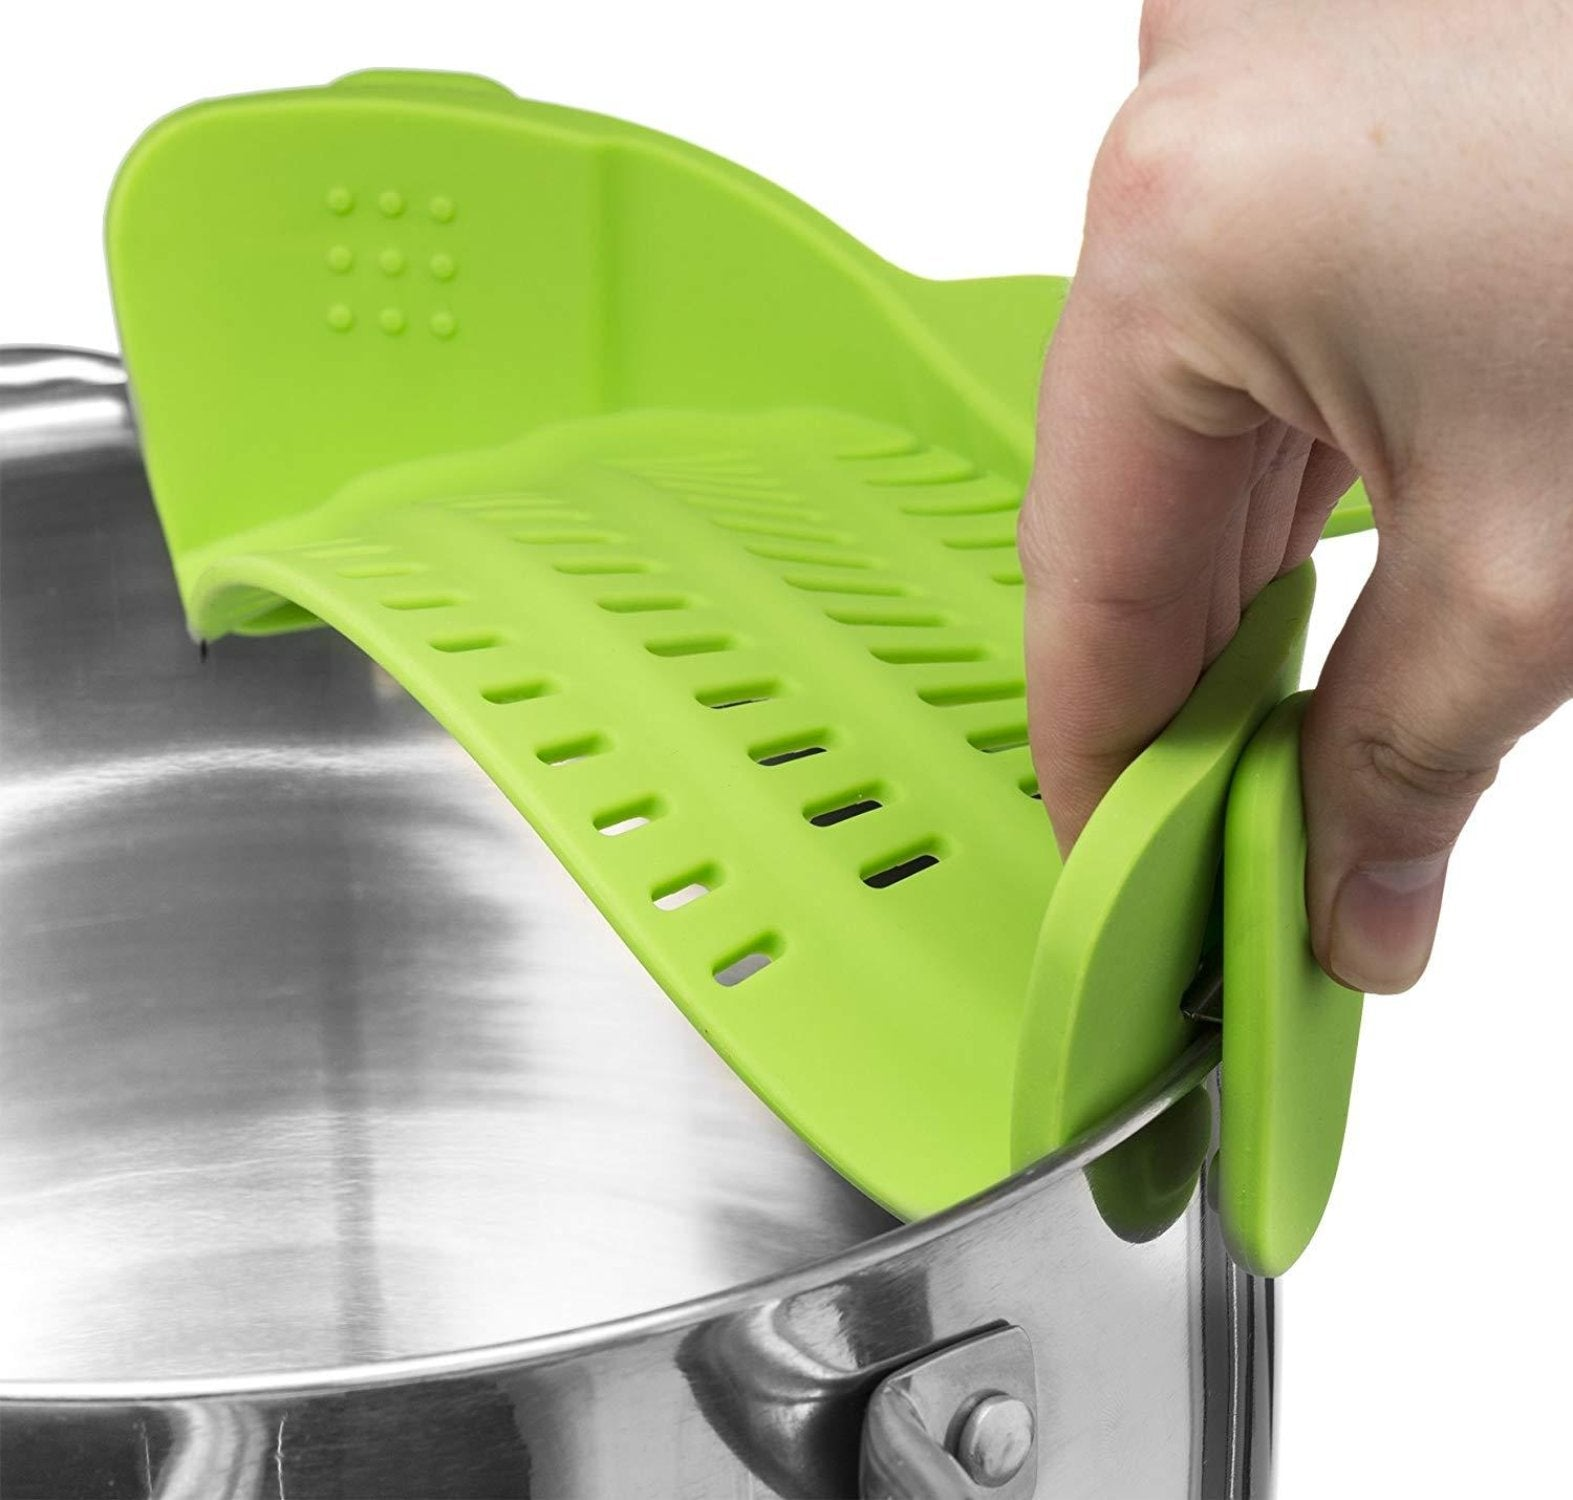 Kitchen  Strain Strainer, Clip On Silicone Colander, Fits all Pots and Bowls